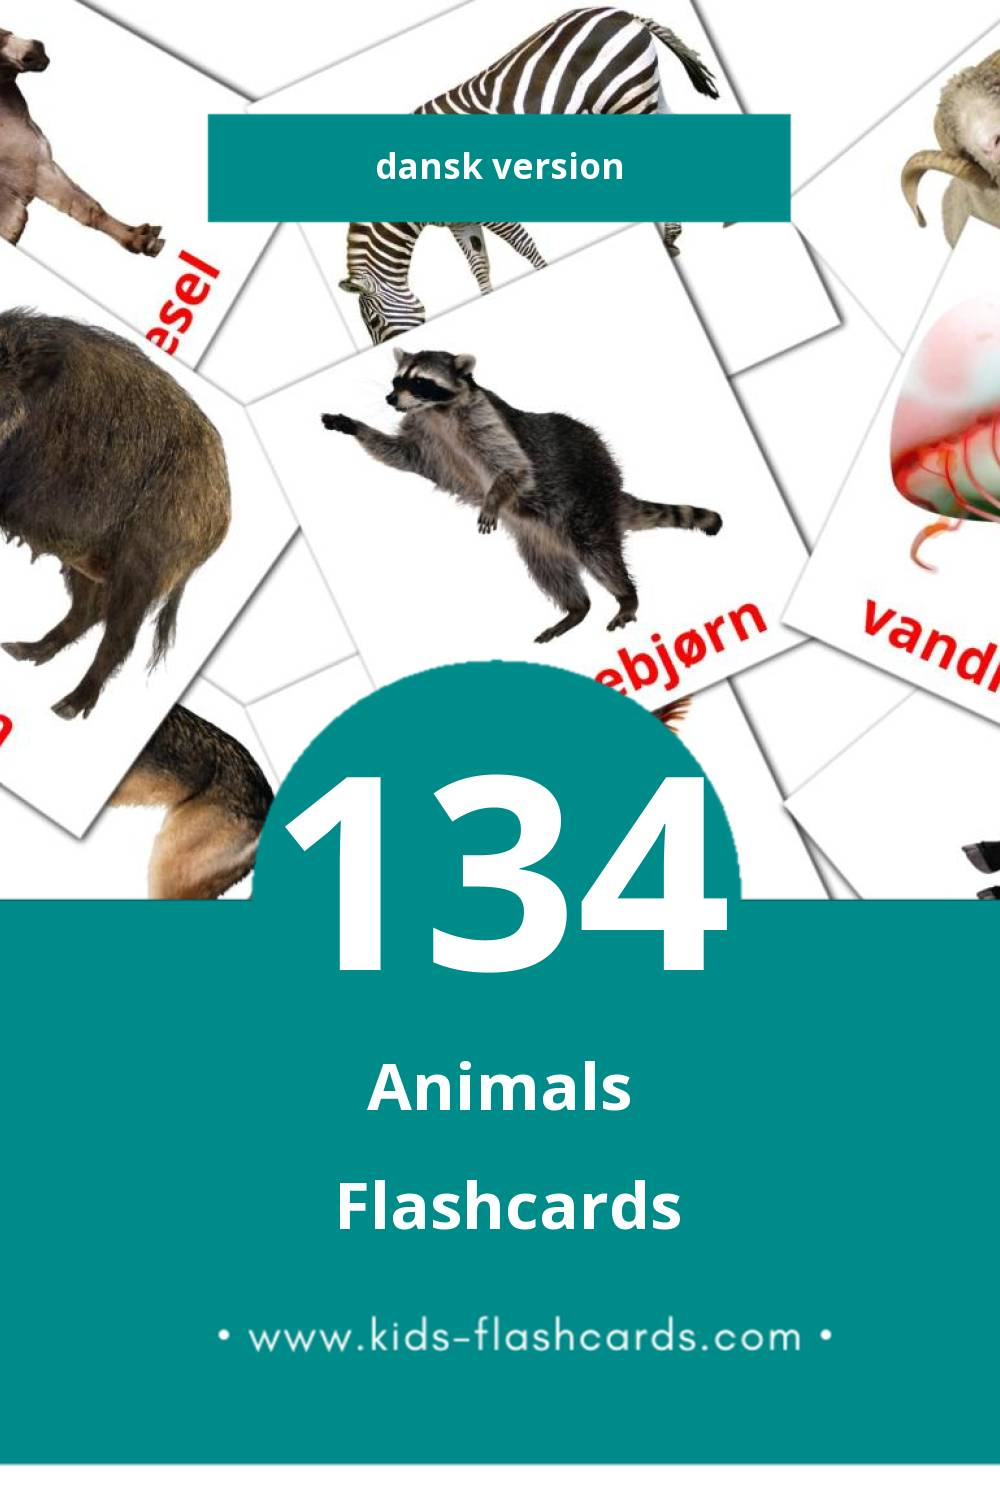 Visual Dyr Flashcards for Toddlers (134 cards in Dansk)